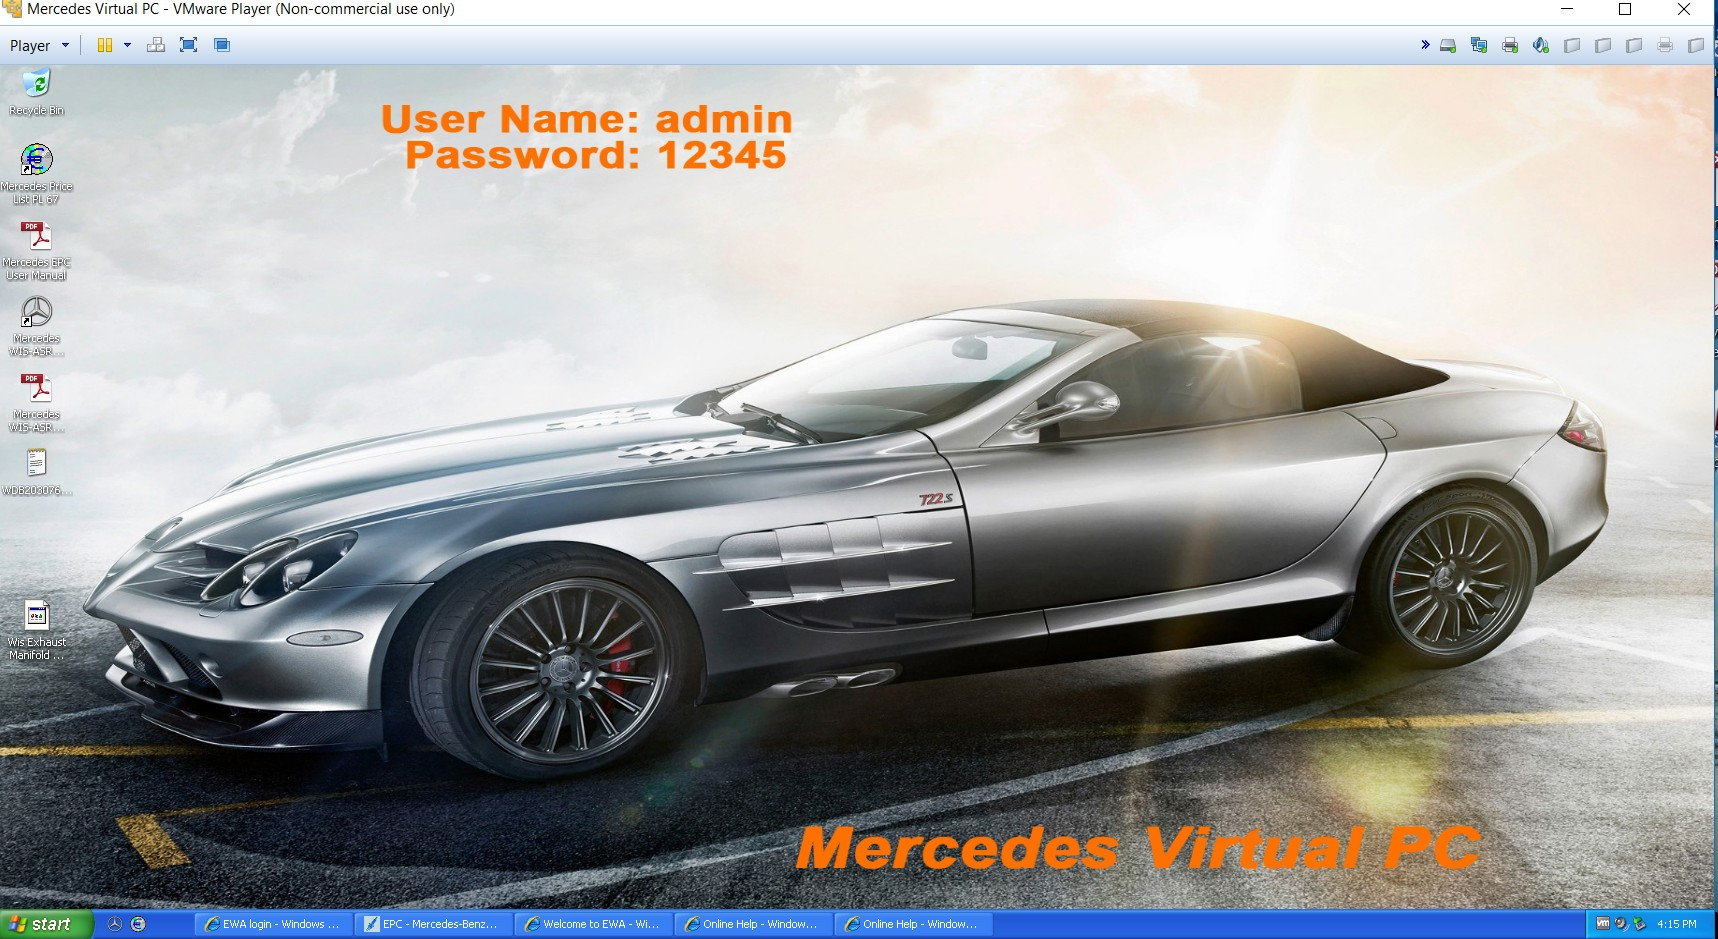 Installing headers questions - MBWorld org Forums